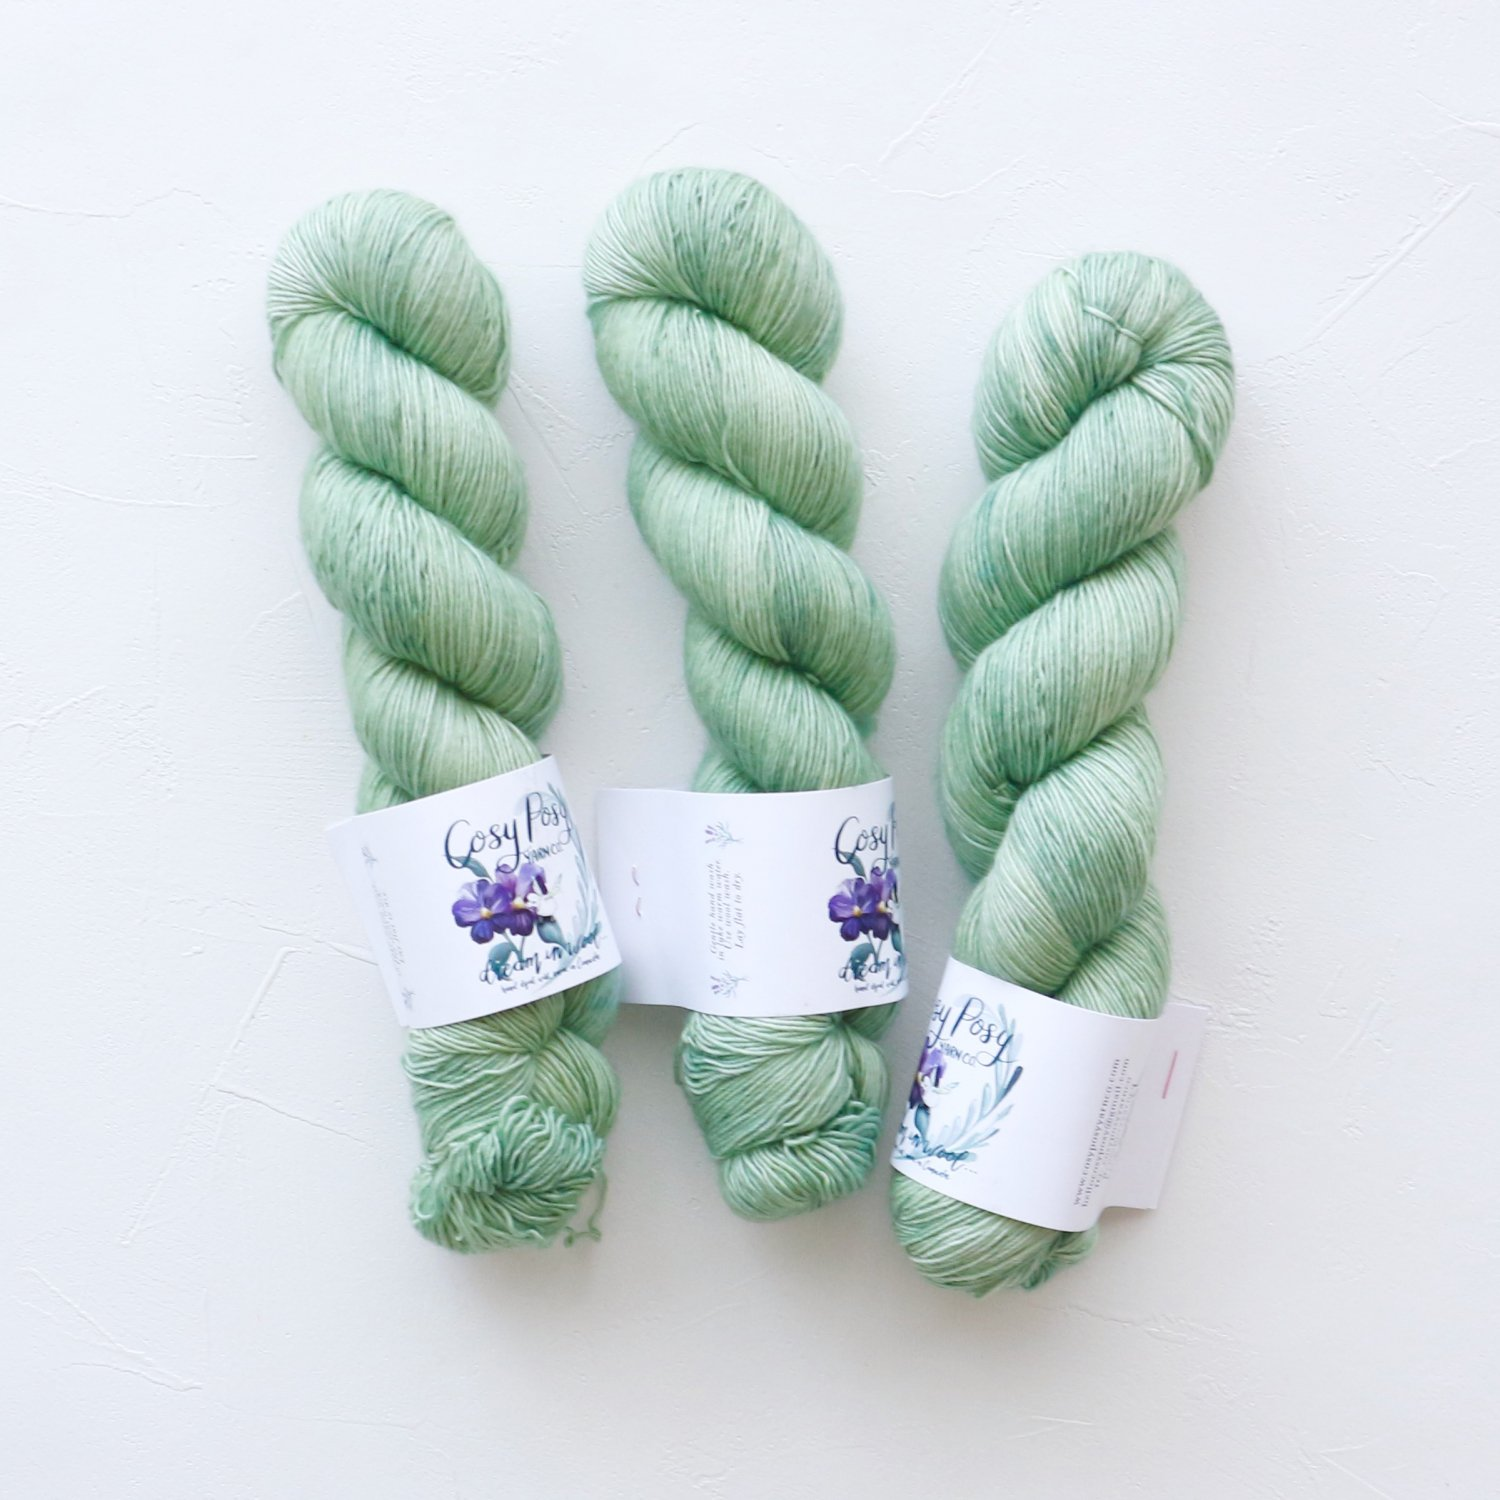 【Cosy Posy Yarn】<br>CLOUD<br>Luna Moth(No speckles)